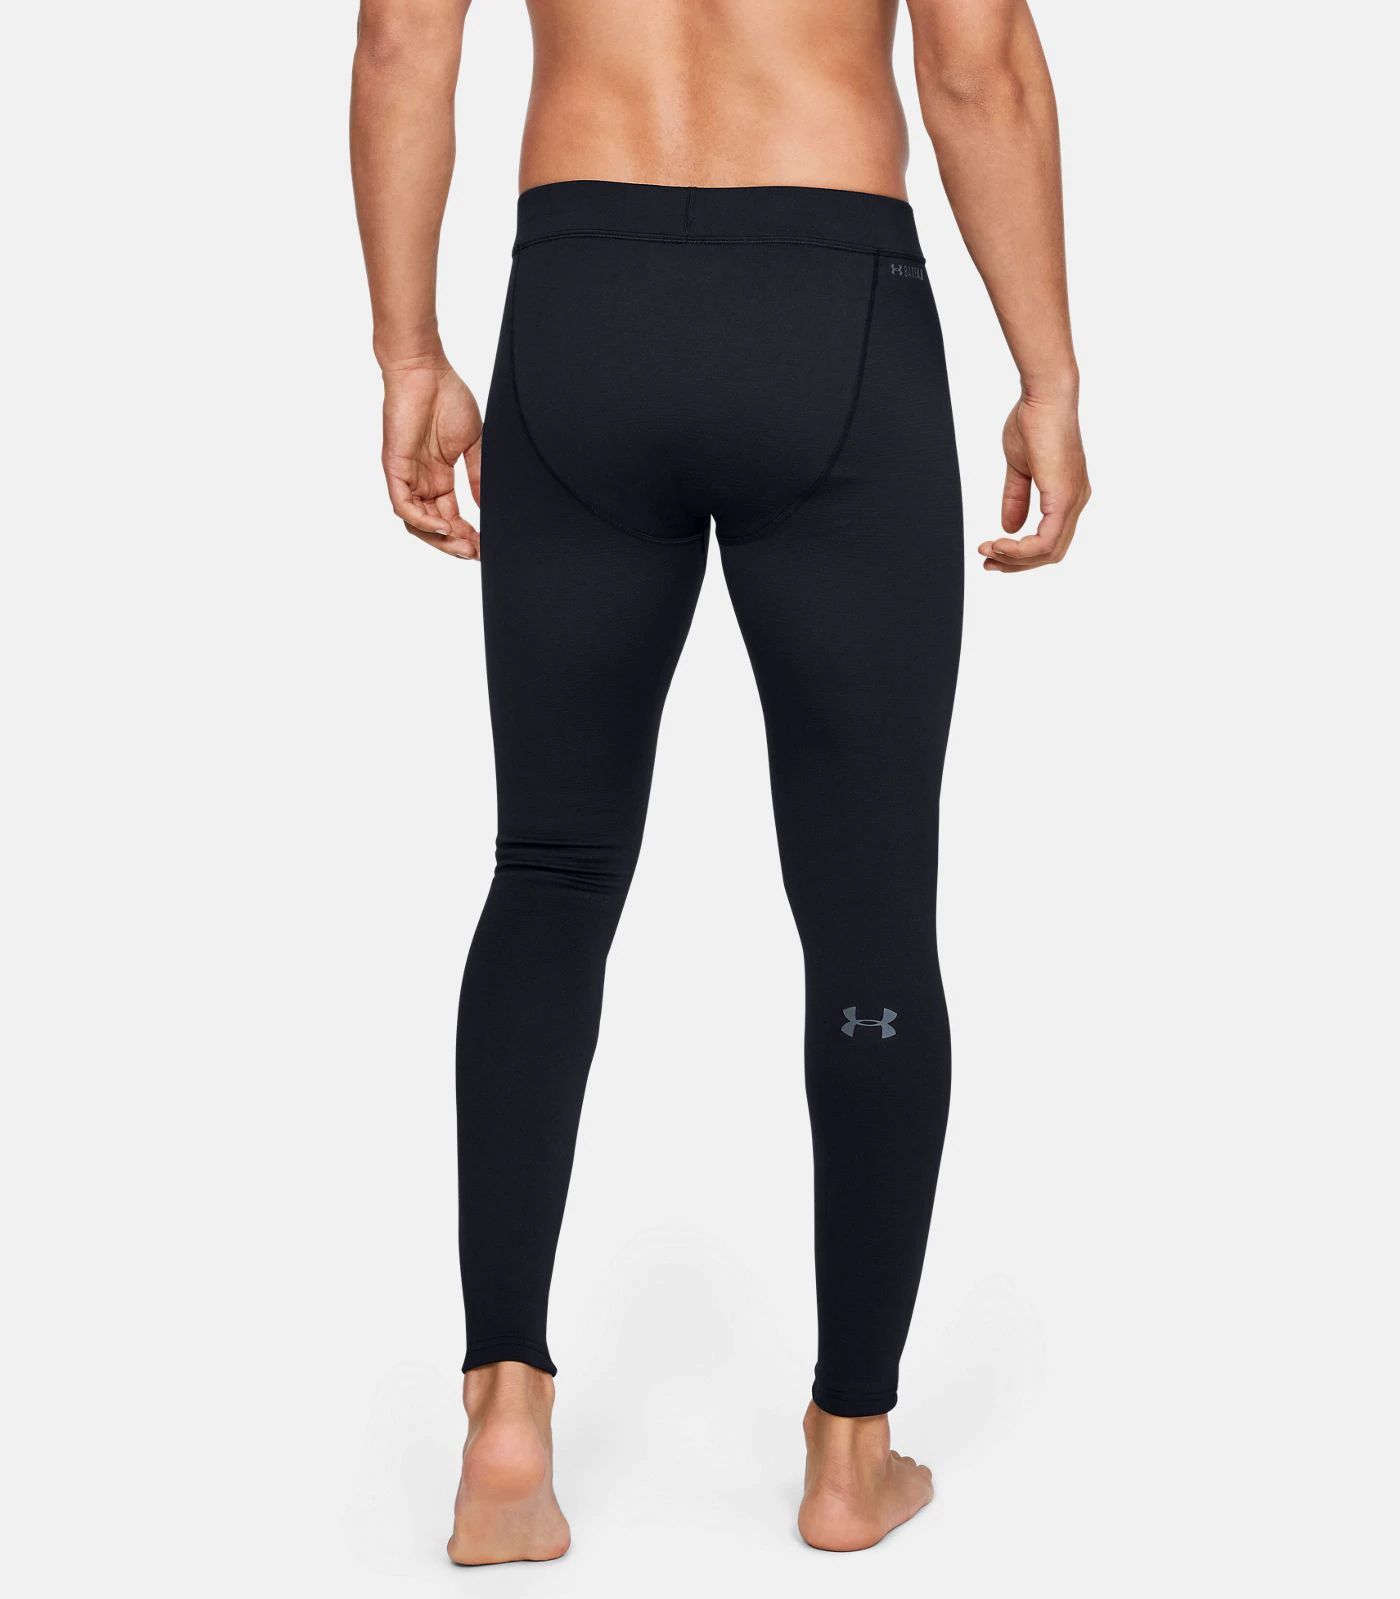 MENS_BASE-4_Legging_UAR1343245001_02